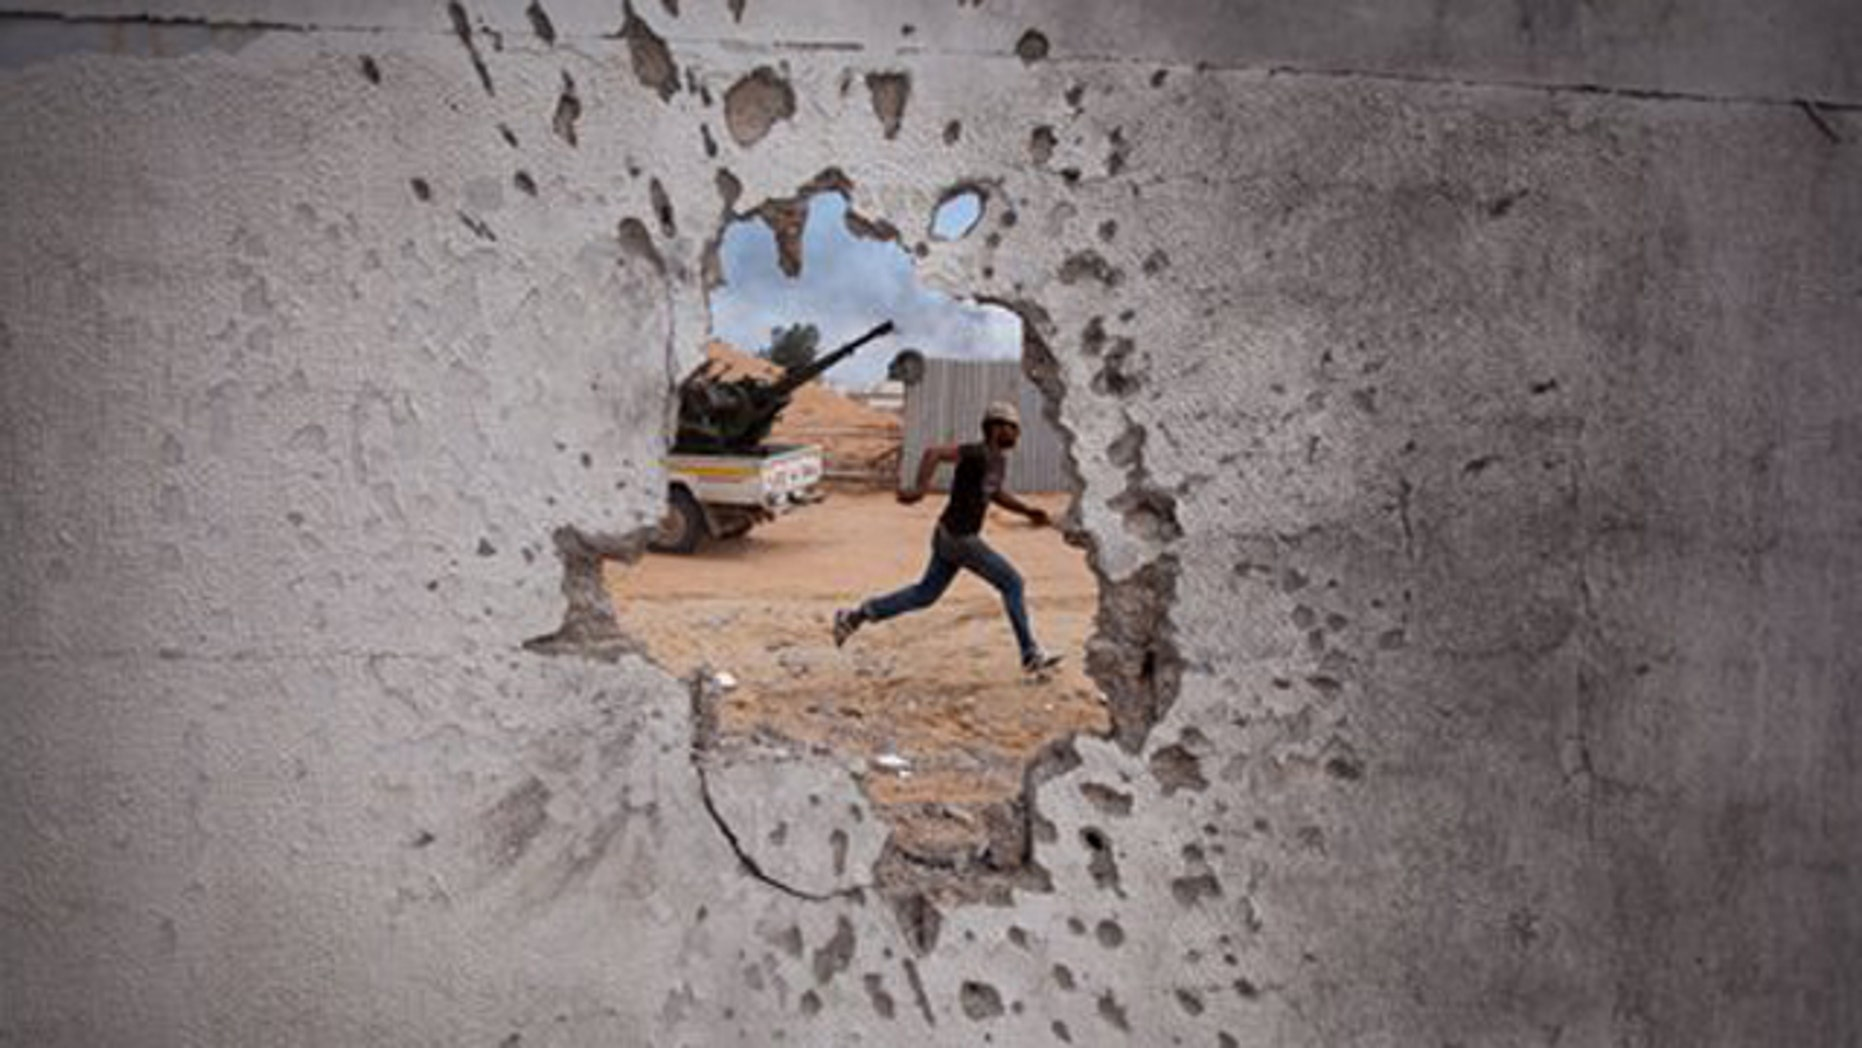 Oct. 7: A Libyan revolutionary fighter runs for cover while attacking pro-Qaddafi forces.